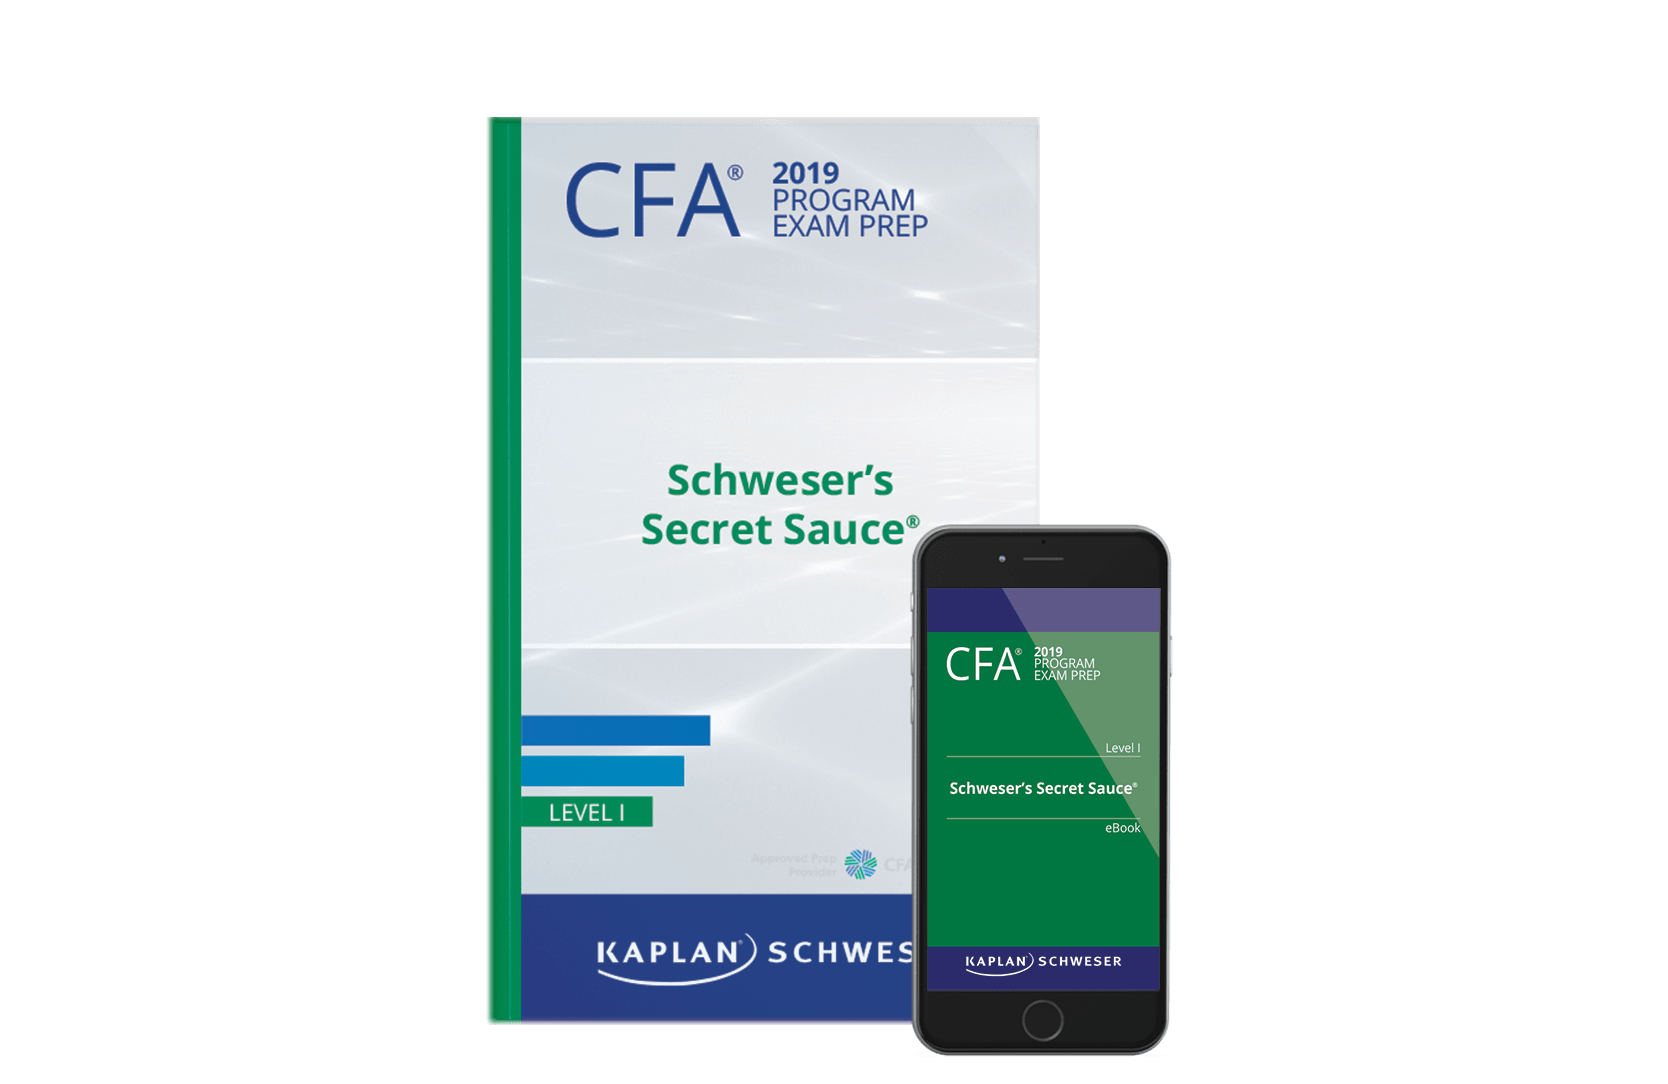 CFA Schweser Secret Sauce